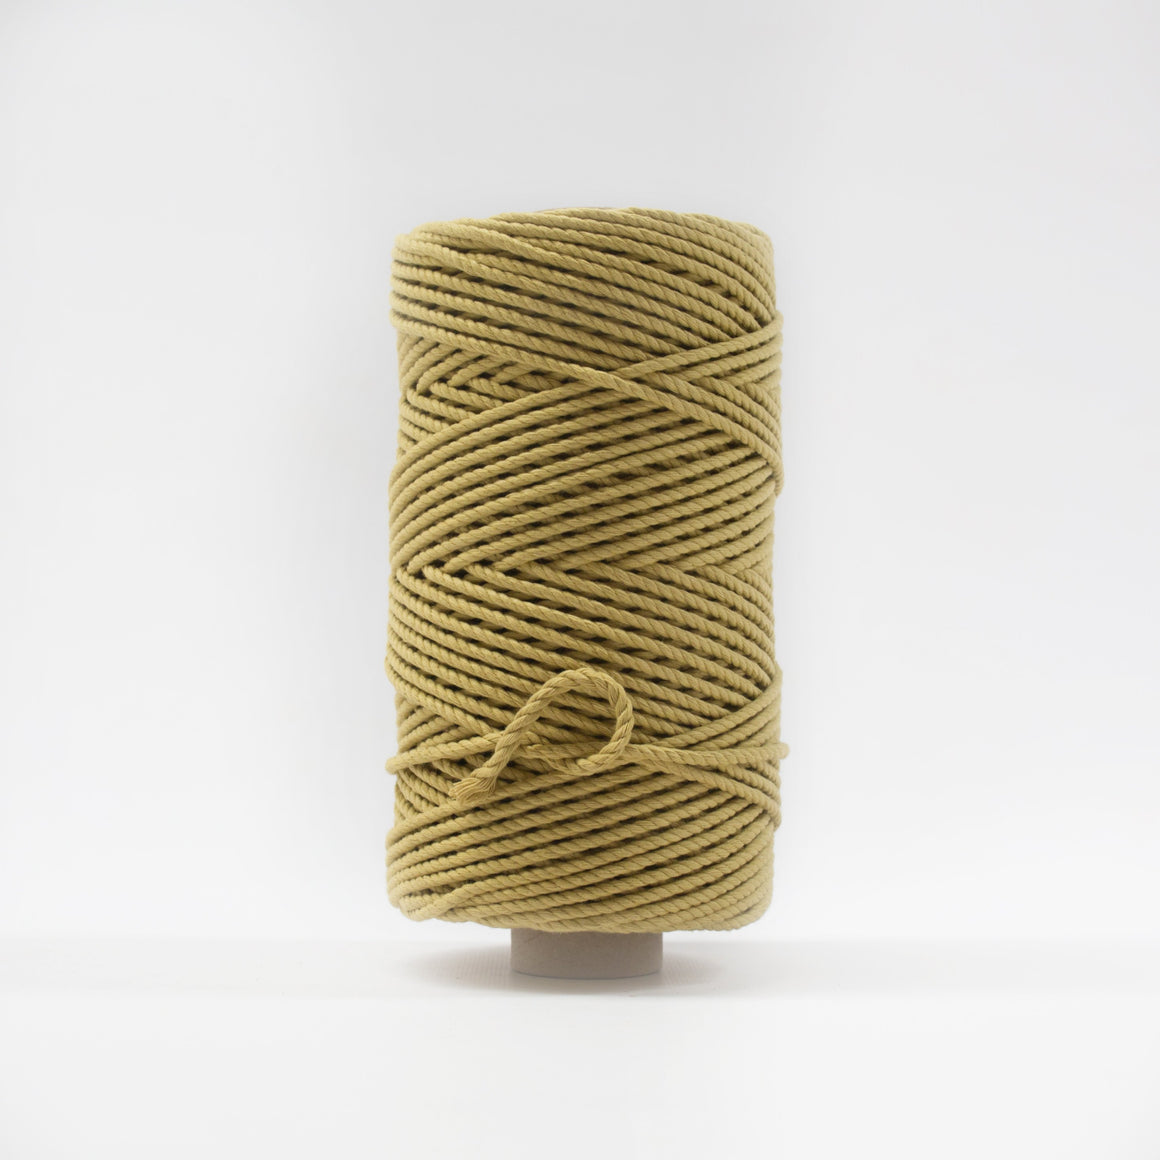 Mary Maker Studio Luxe Colour Cotton 4mm 1KG Recycled Luxe Macrame Rope // Antique Gold macrame cotton macrame rope macrame workshop macrame patterns macrame